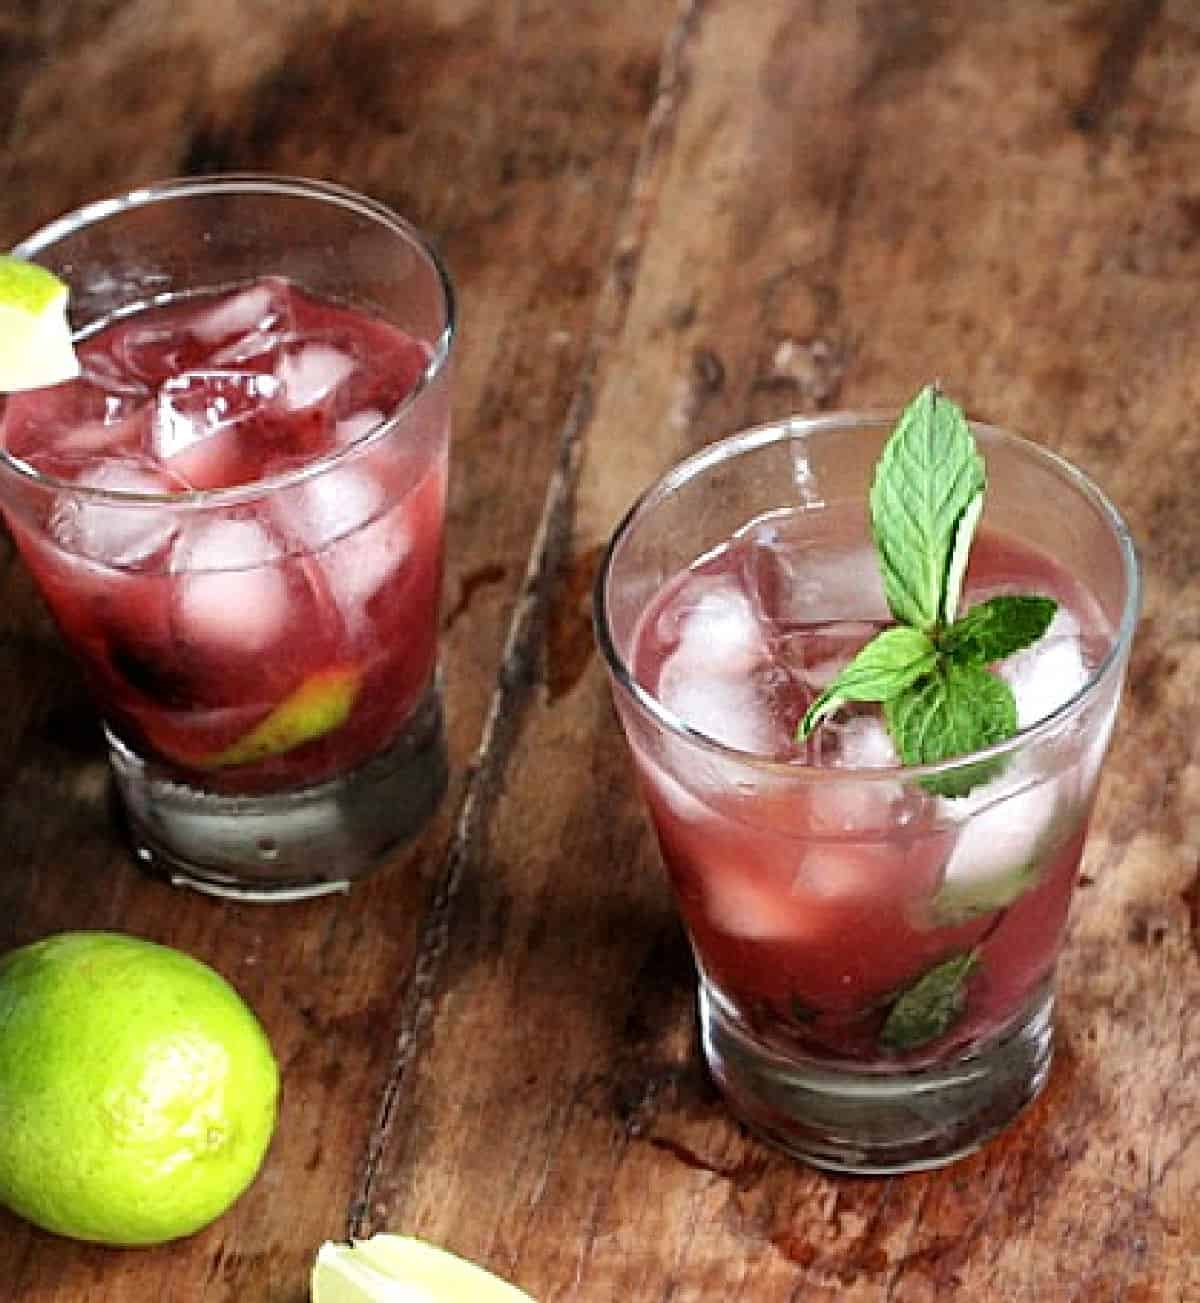 Wooden table with glasses of cherry cocktail, limes and mint sprigs